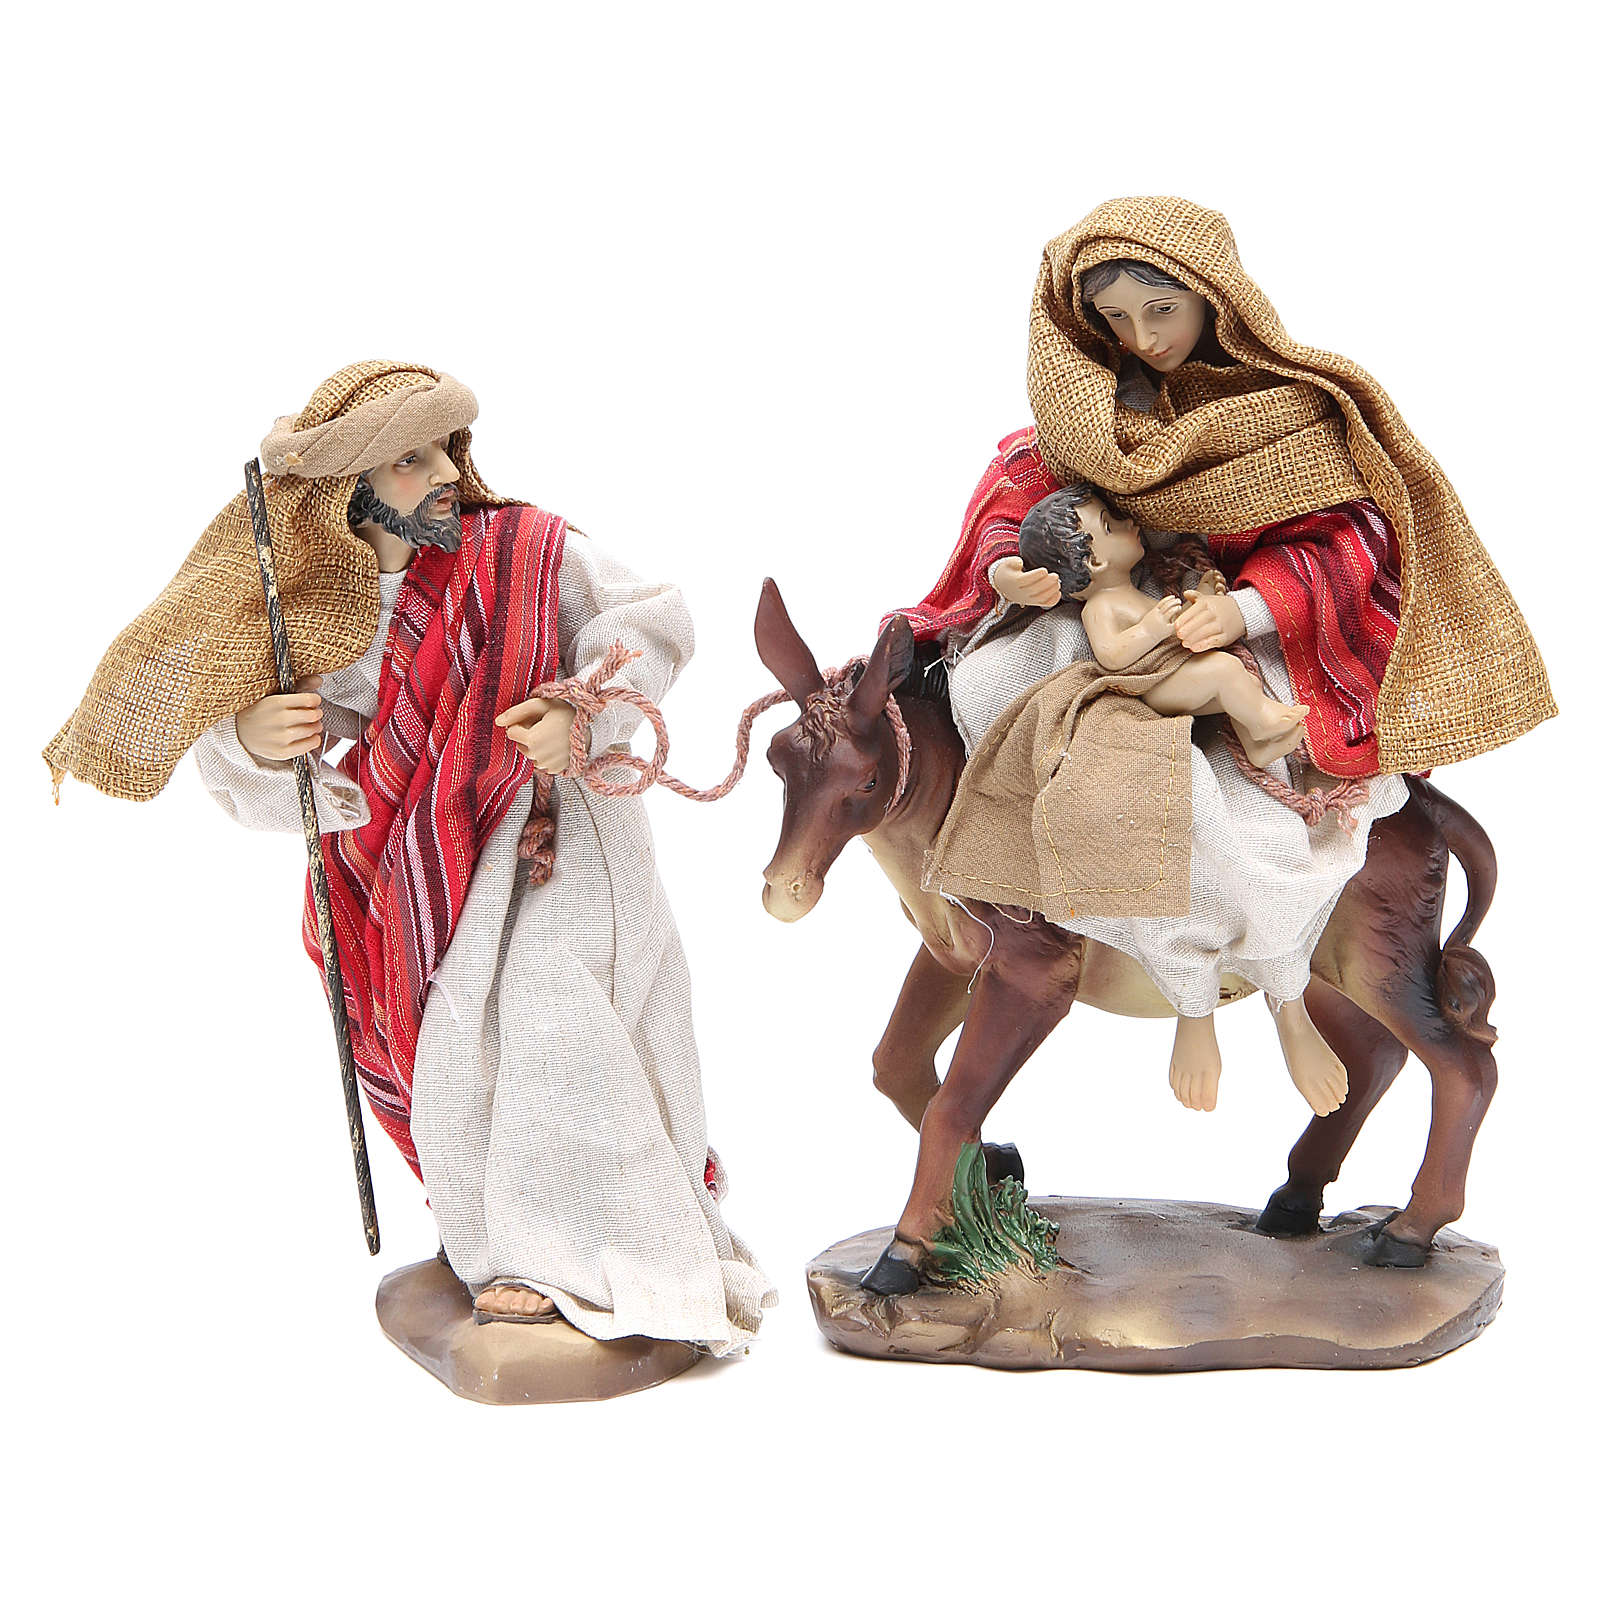 Flee from Egypt 24cm, 2 figurines with Red Beige finish 3